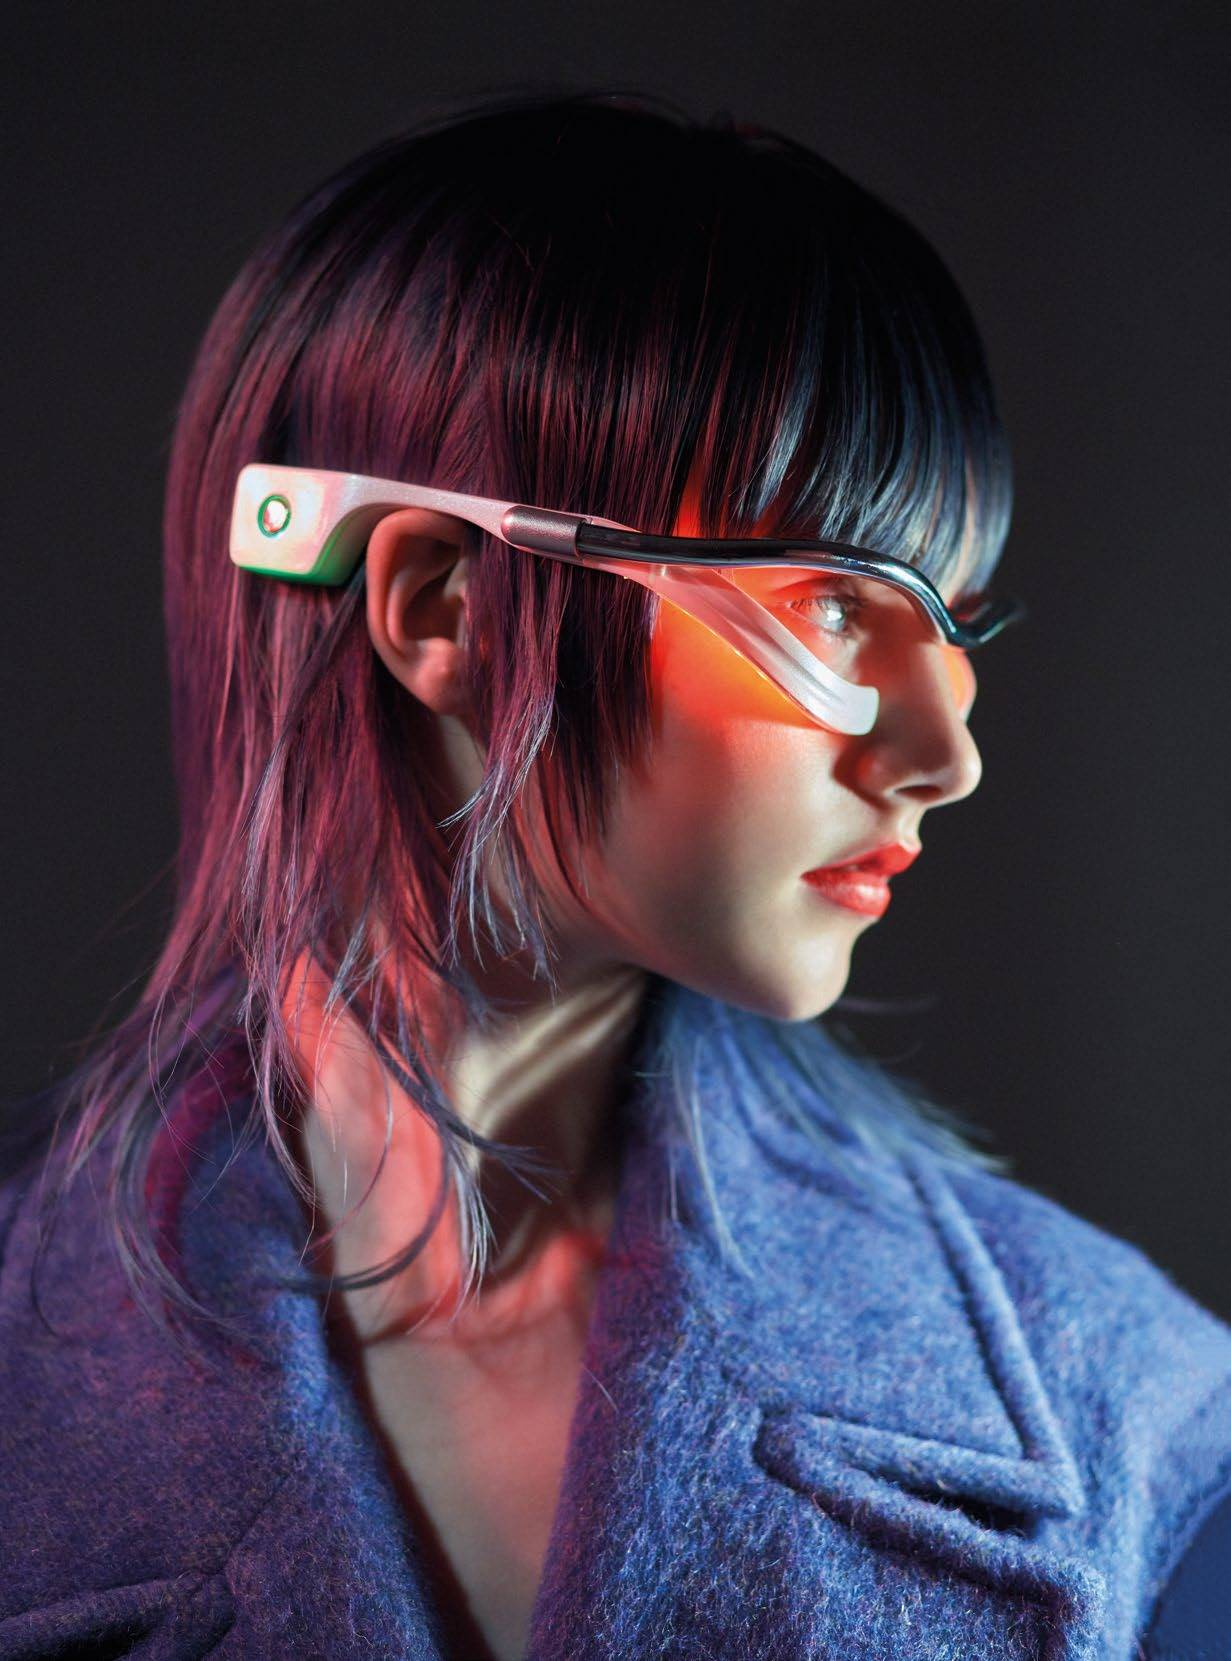 The Anti-ageing LED Glasses For Your Eyes